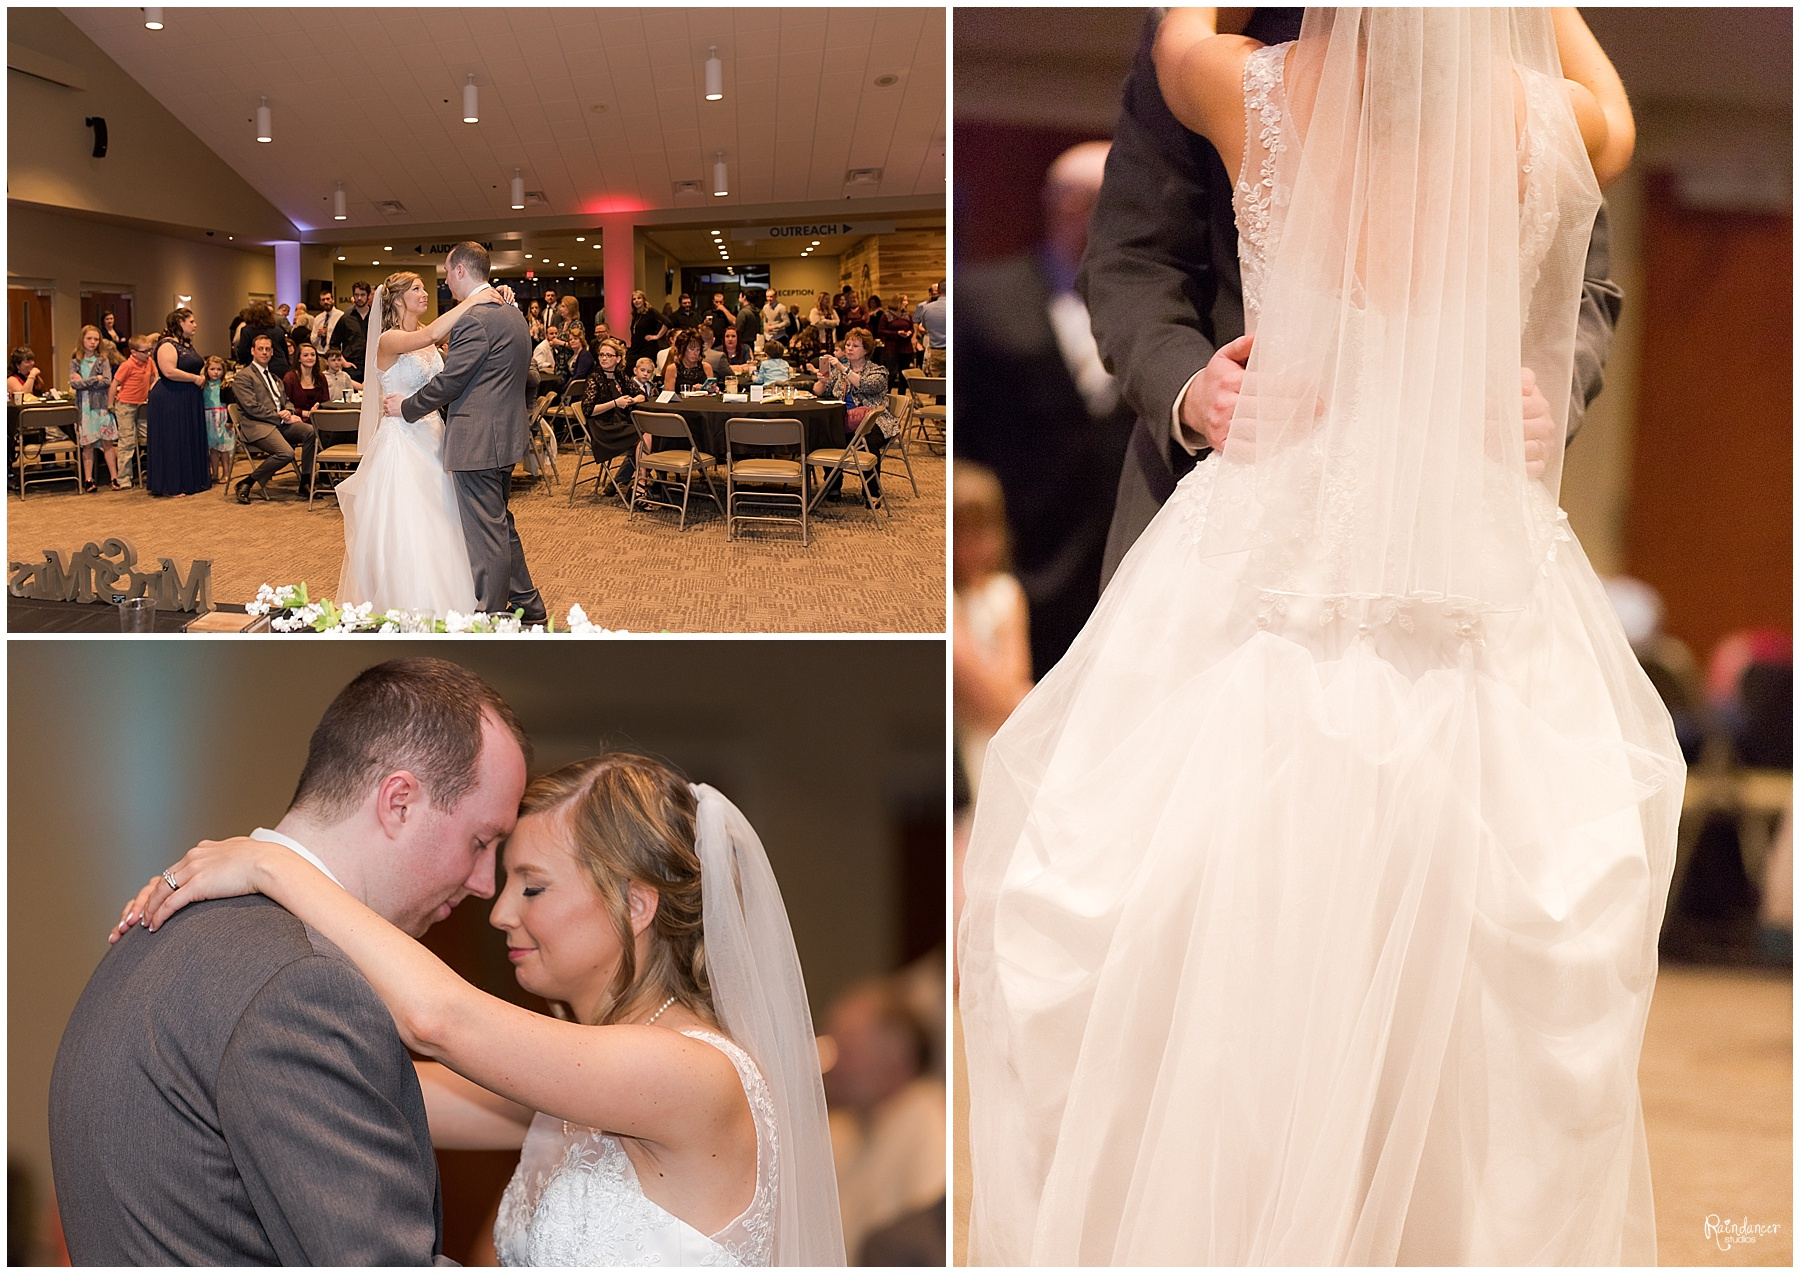 Bride and groom's first dance by Raindancer Studios Indianapolis Wedding Photographer Jill Howell